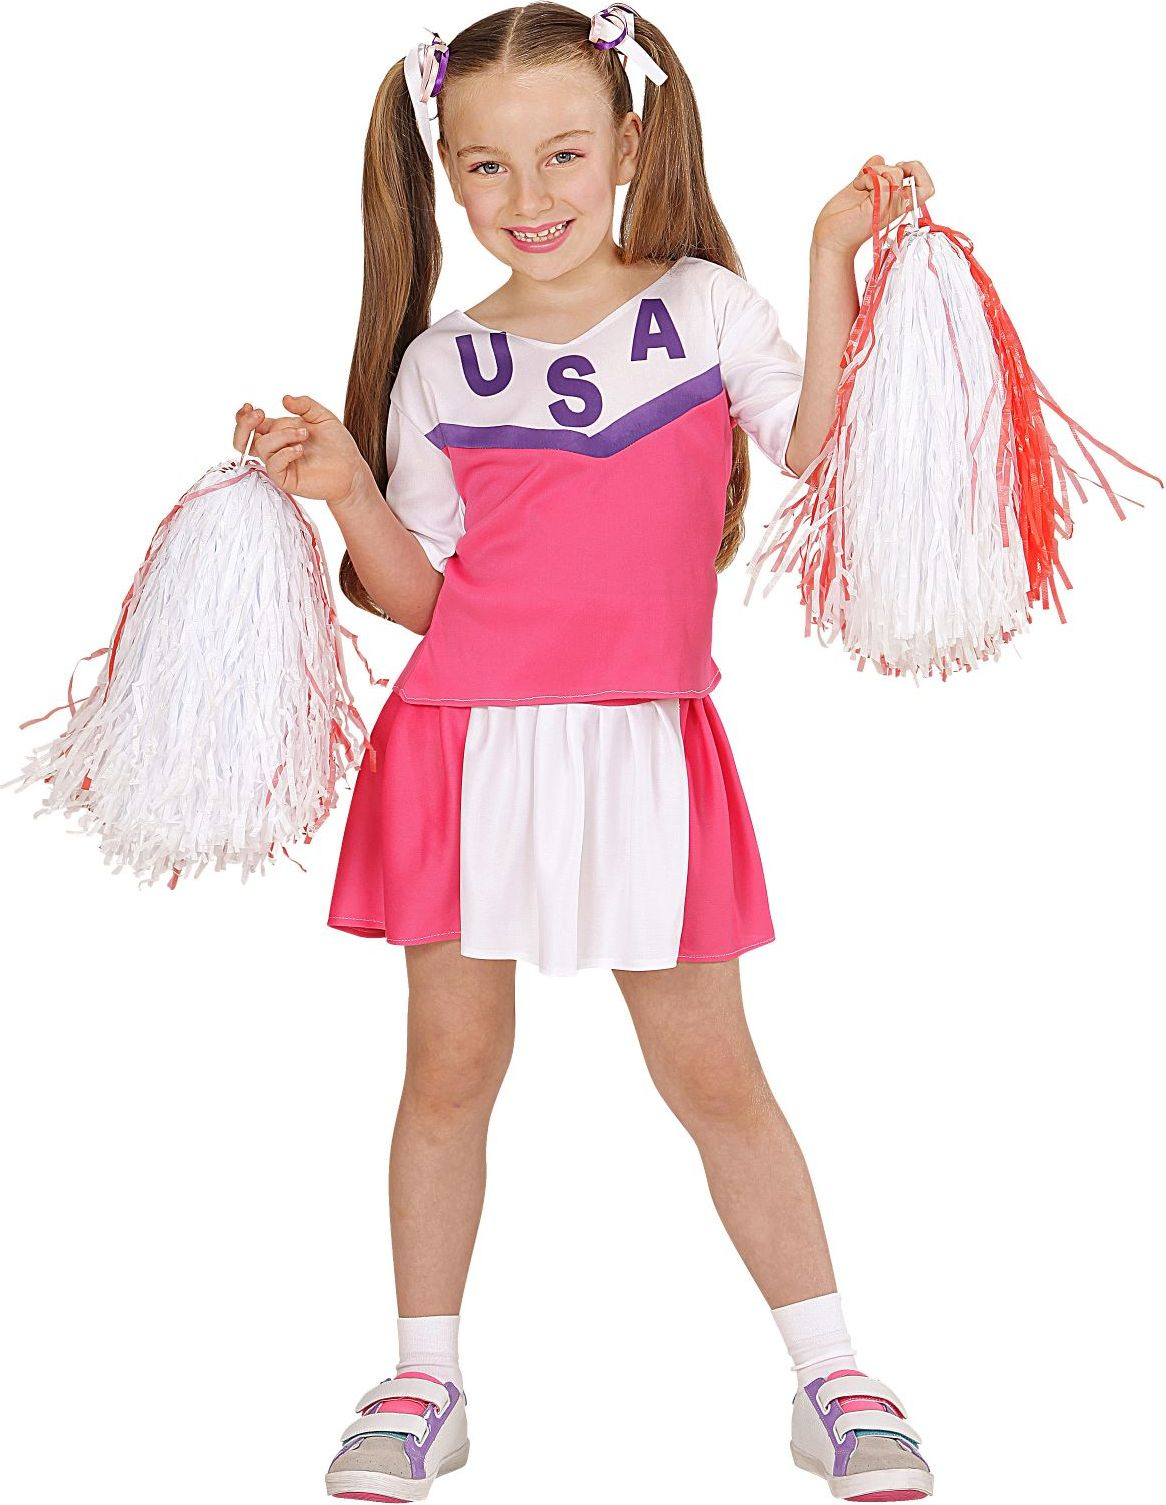 Cheerleader kleding kind